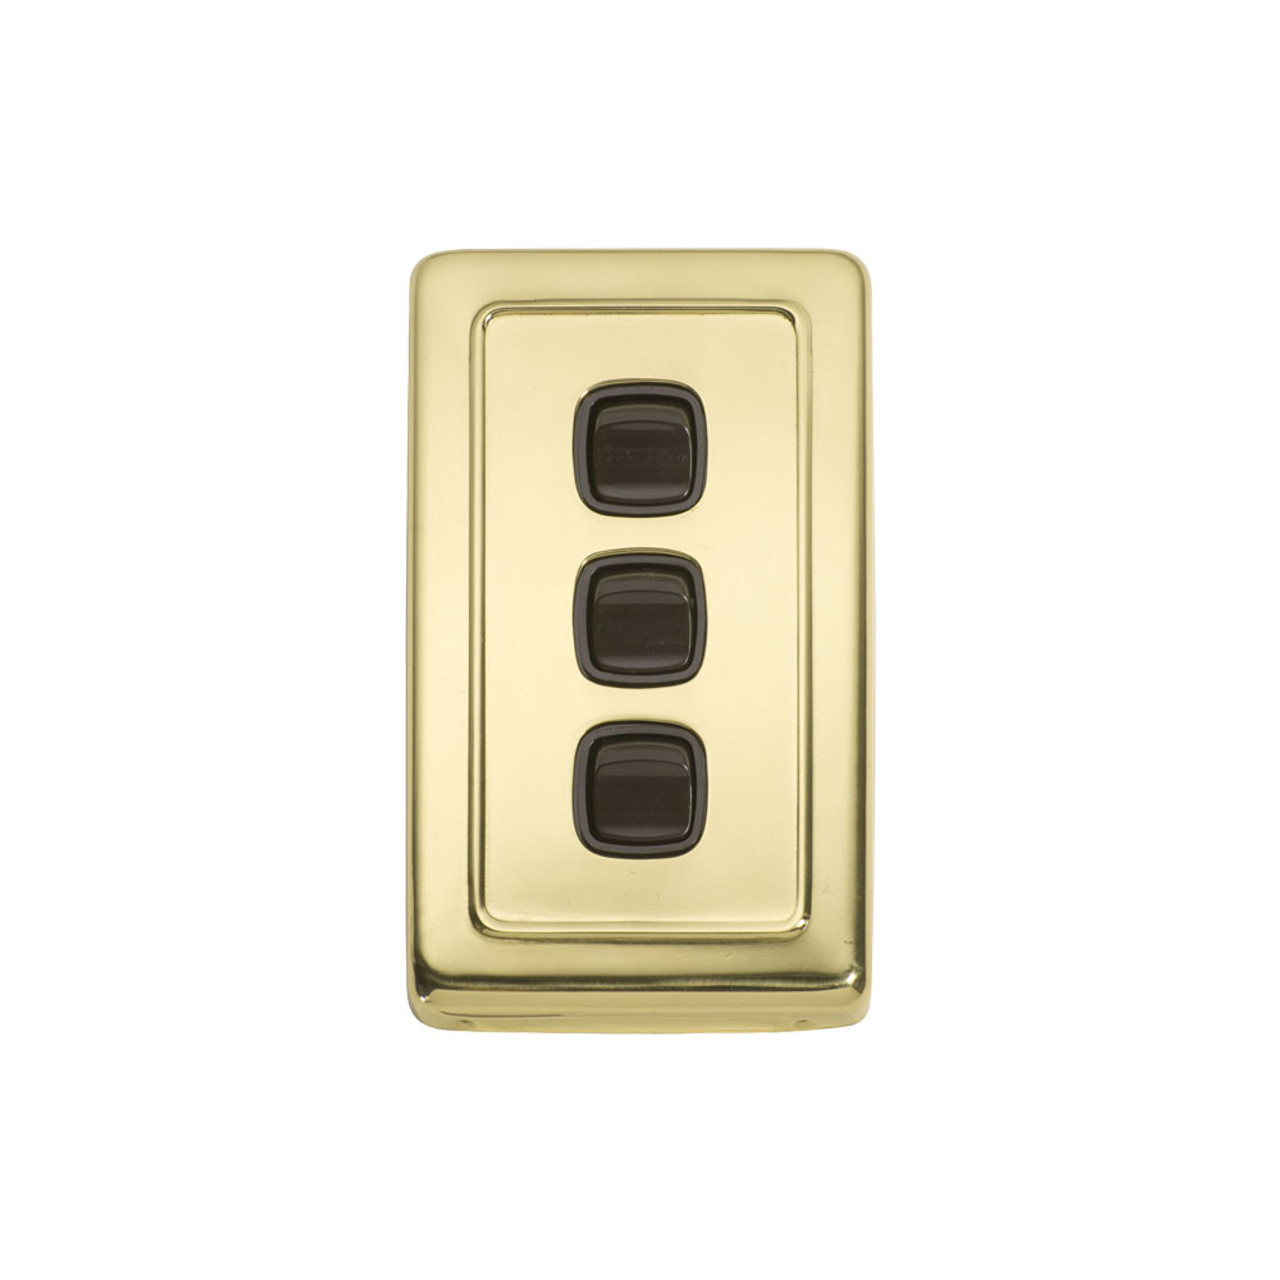 Classic 3 Gang Flat Plate Heritage Light Switch - Polished Brass Plate with Brown Rocker